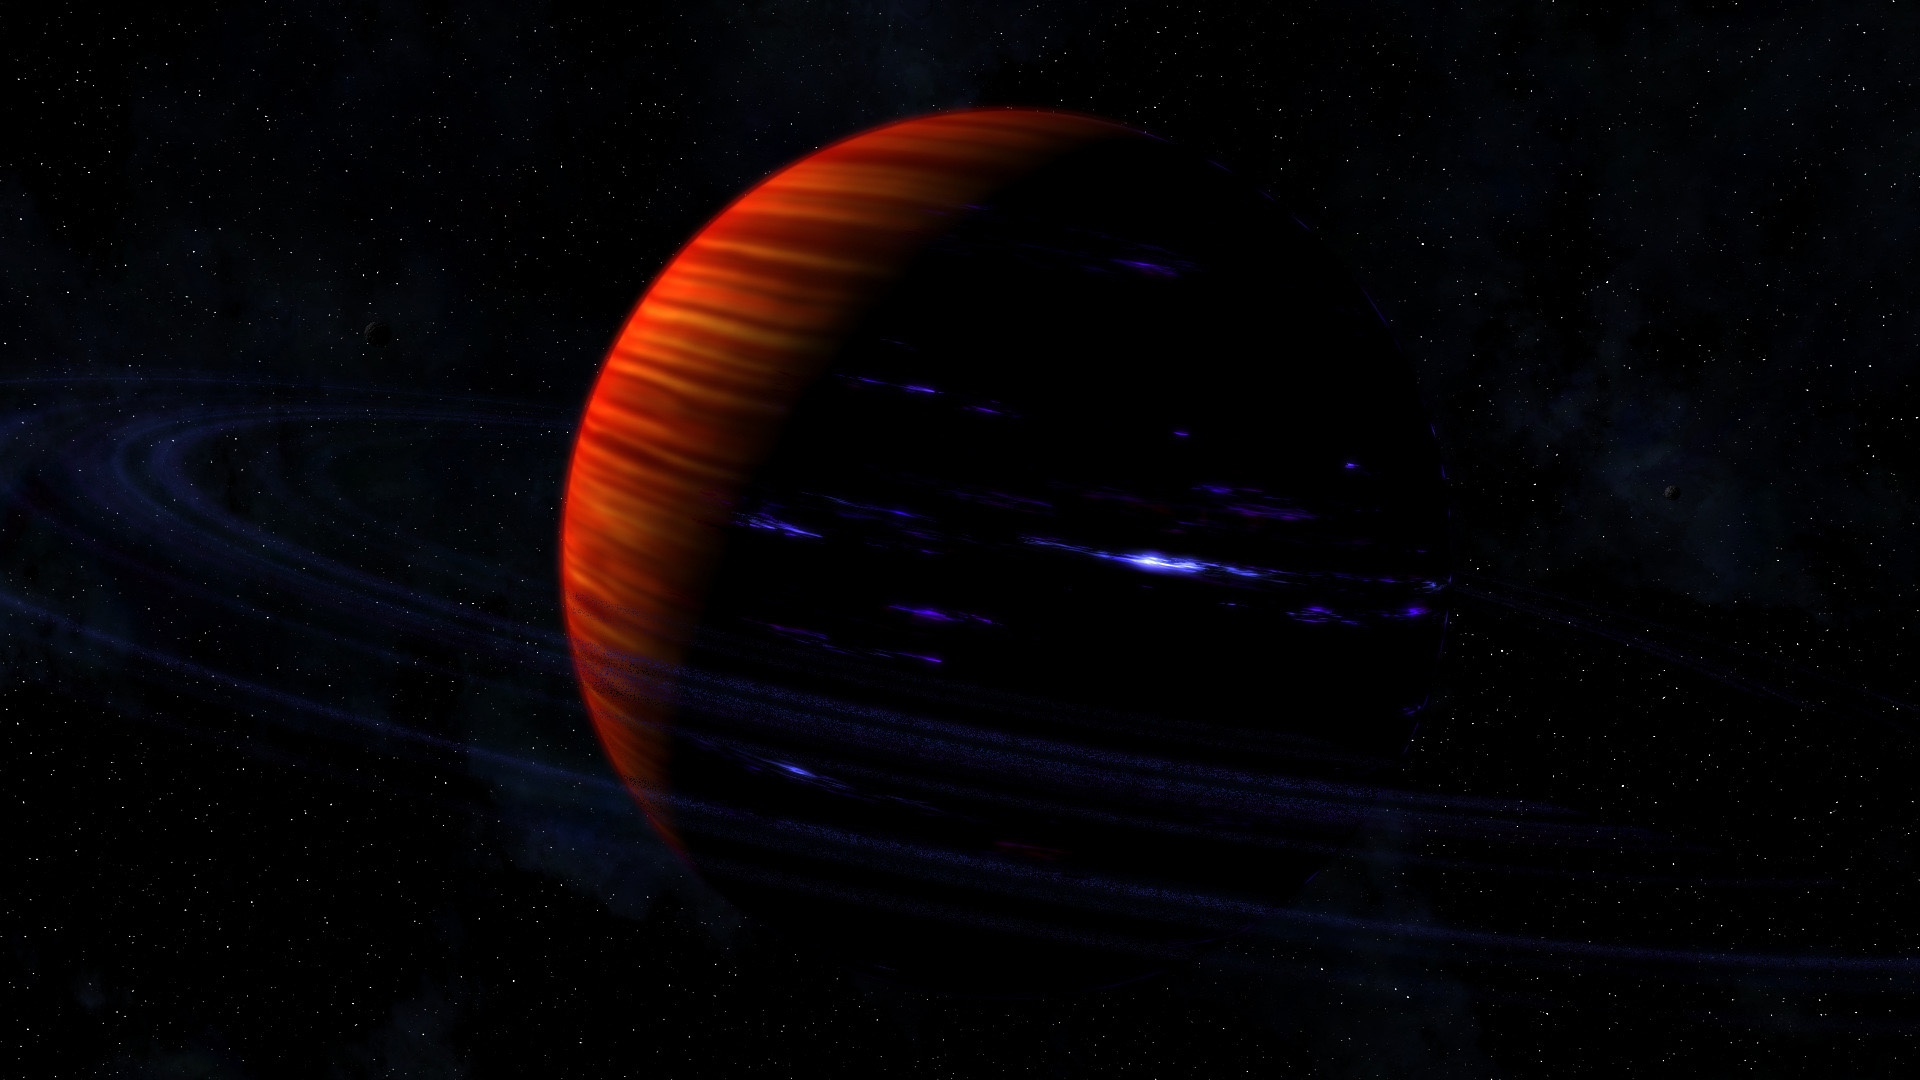 Free sci fi planets wallpaper background